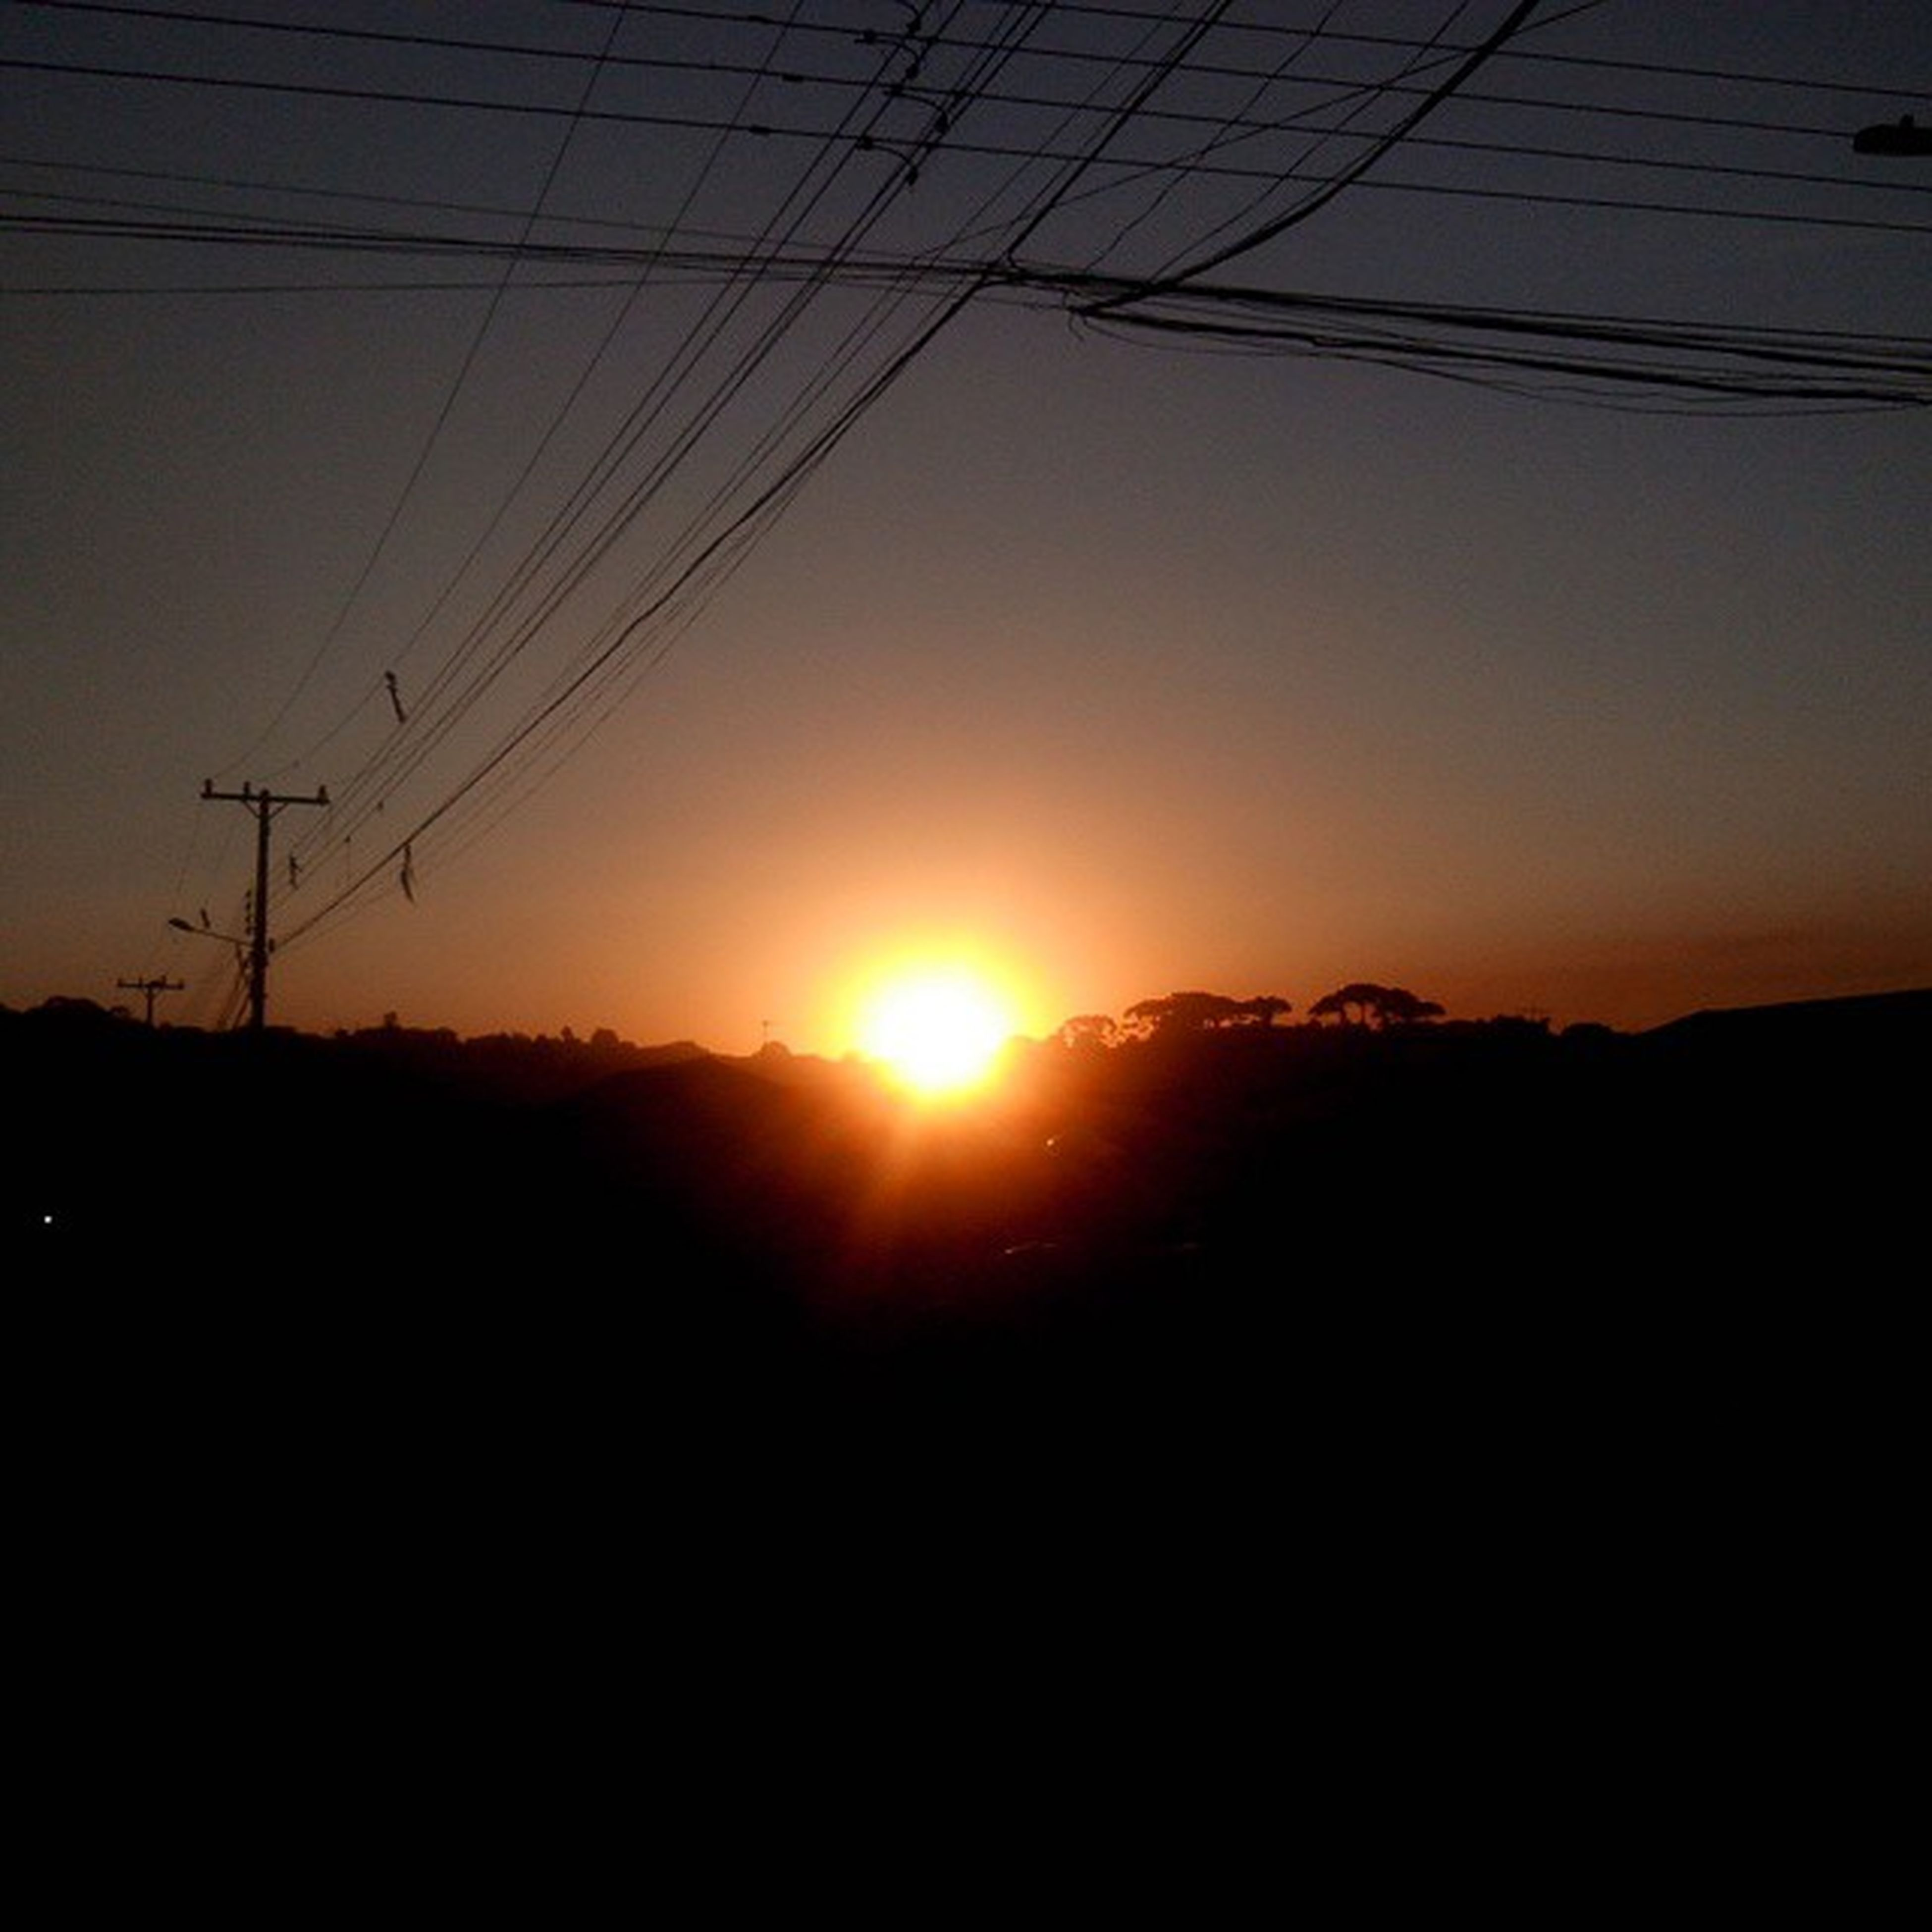 sunset, silhouette, sun, power line, electricity pylon, scenics, tranquil scene, tranquility, power supply, electricity, beauty in nature, sky, cable, orange color, nature, landscape, sunlight, connection, idyllic, dark